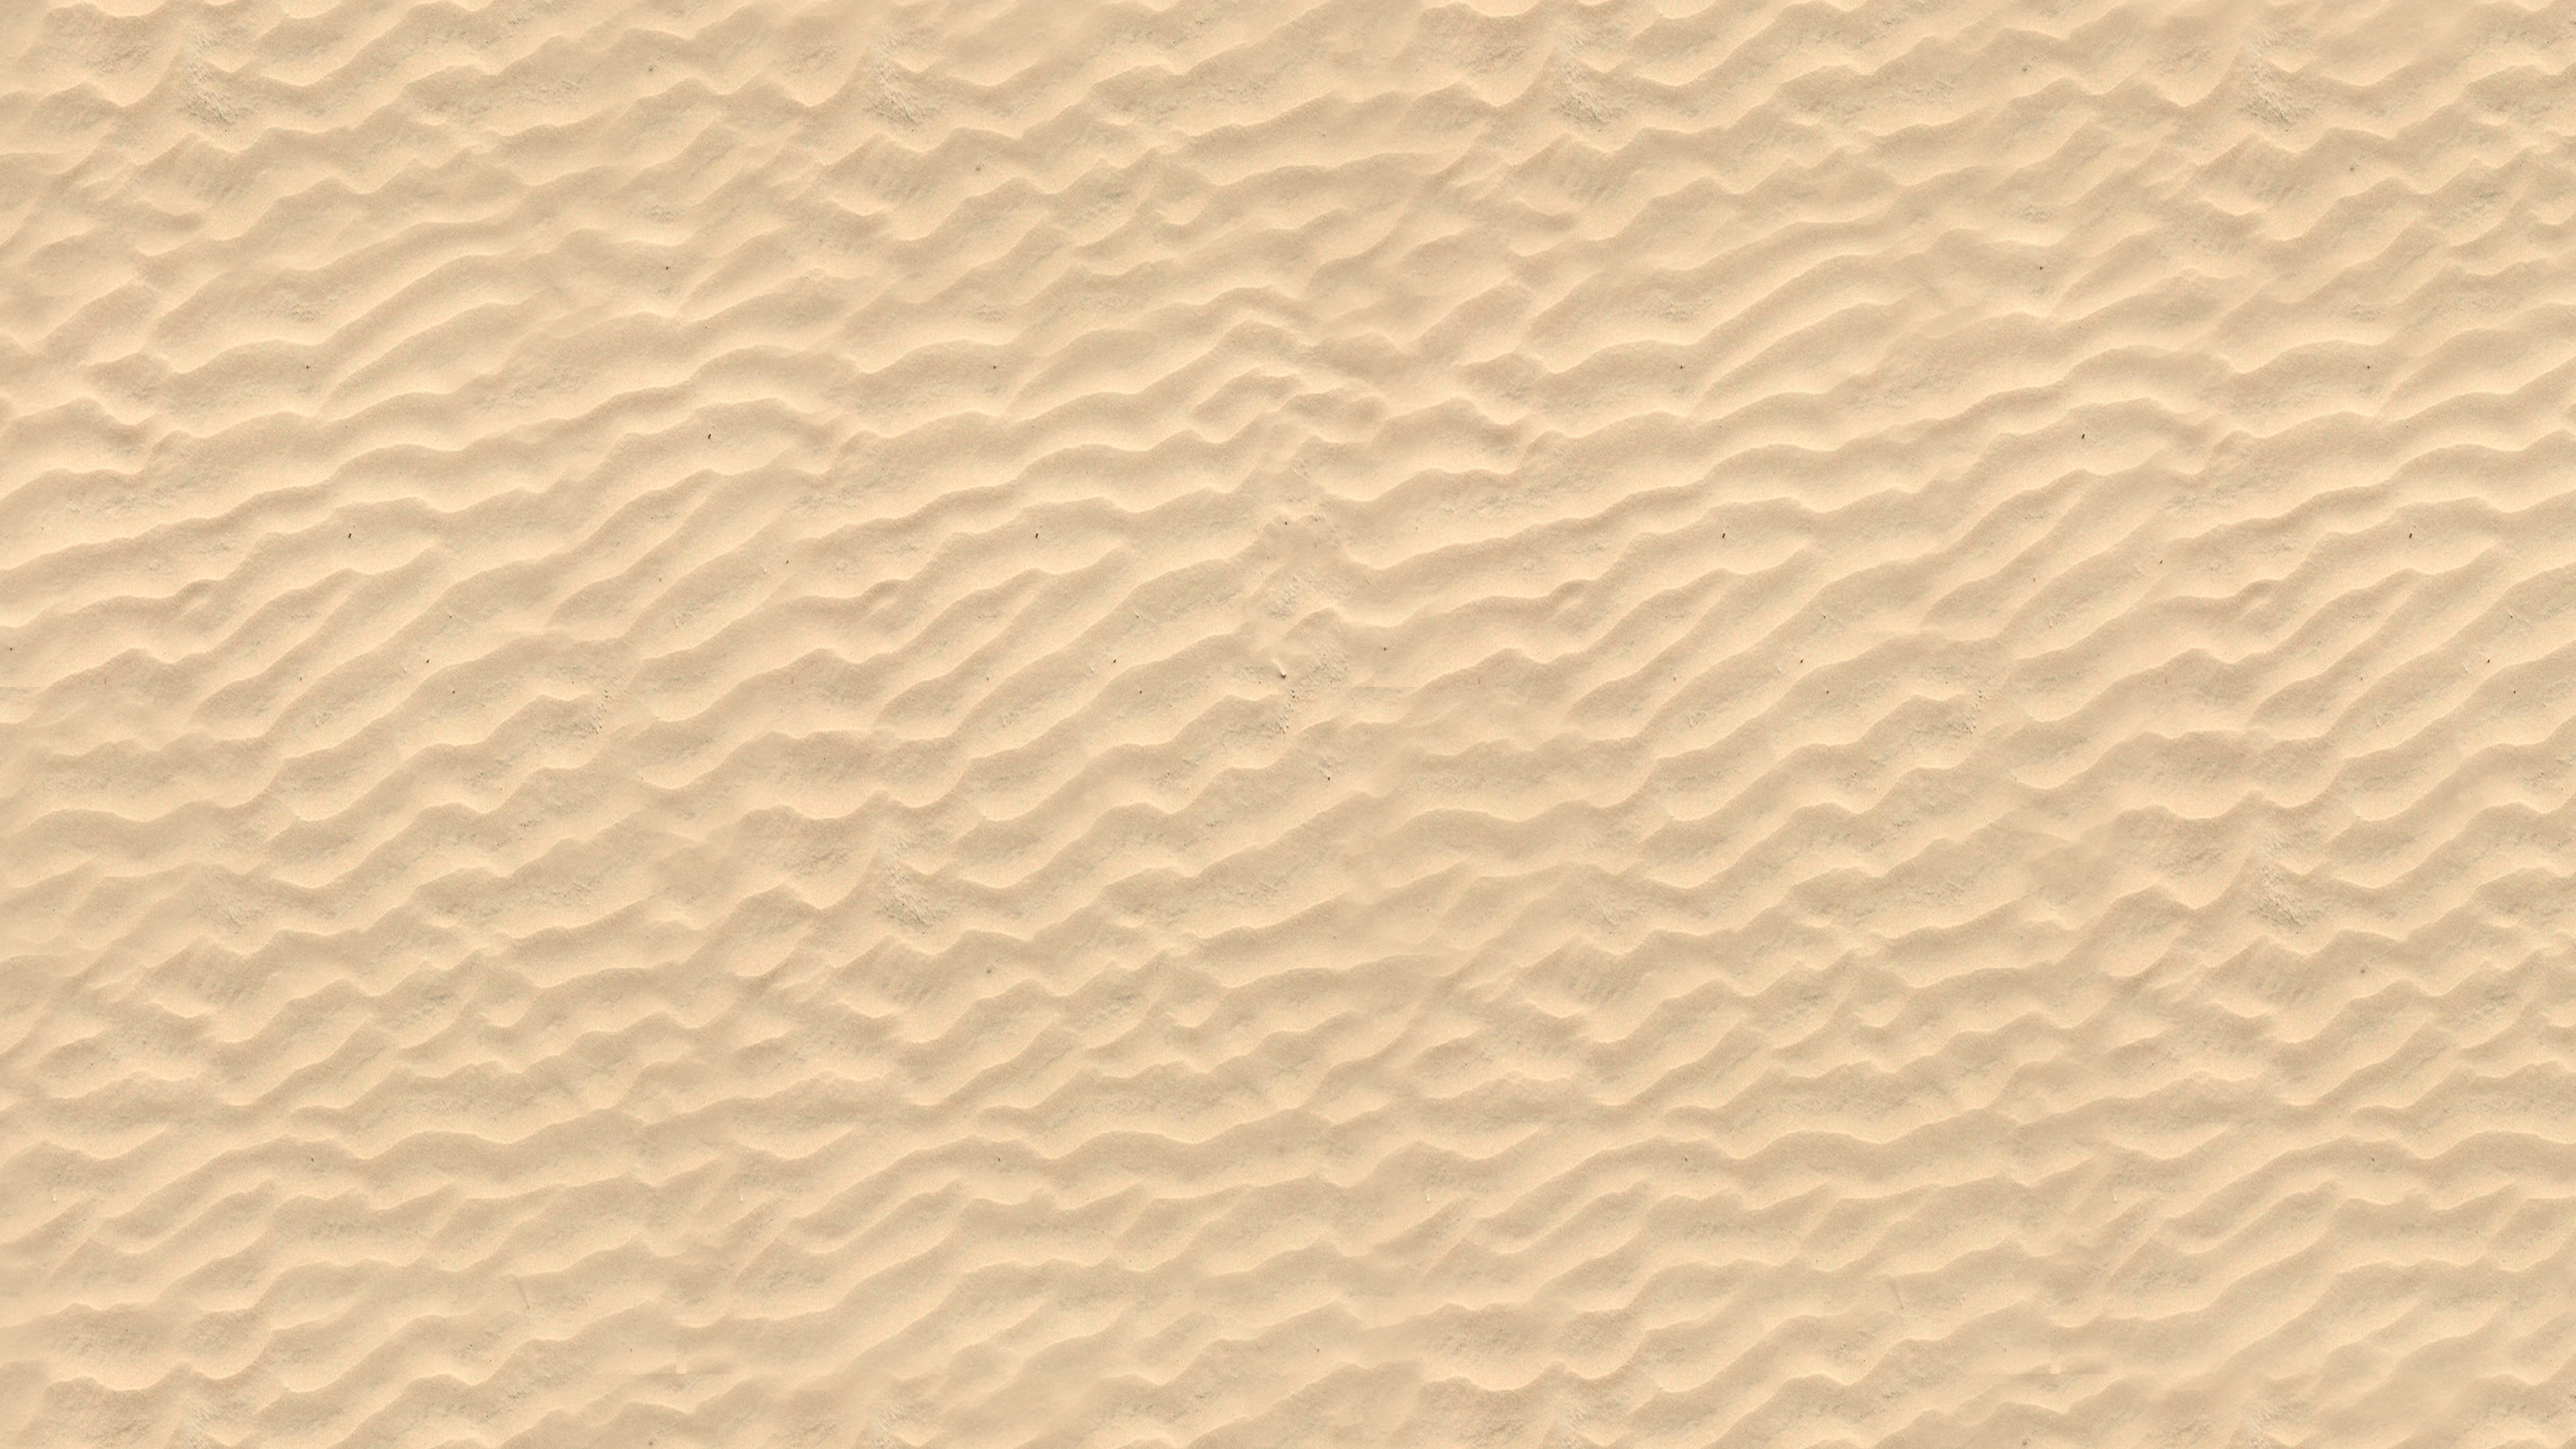 Smooth Sand Dunes Download Royalty Free Texture